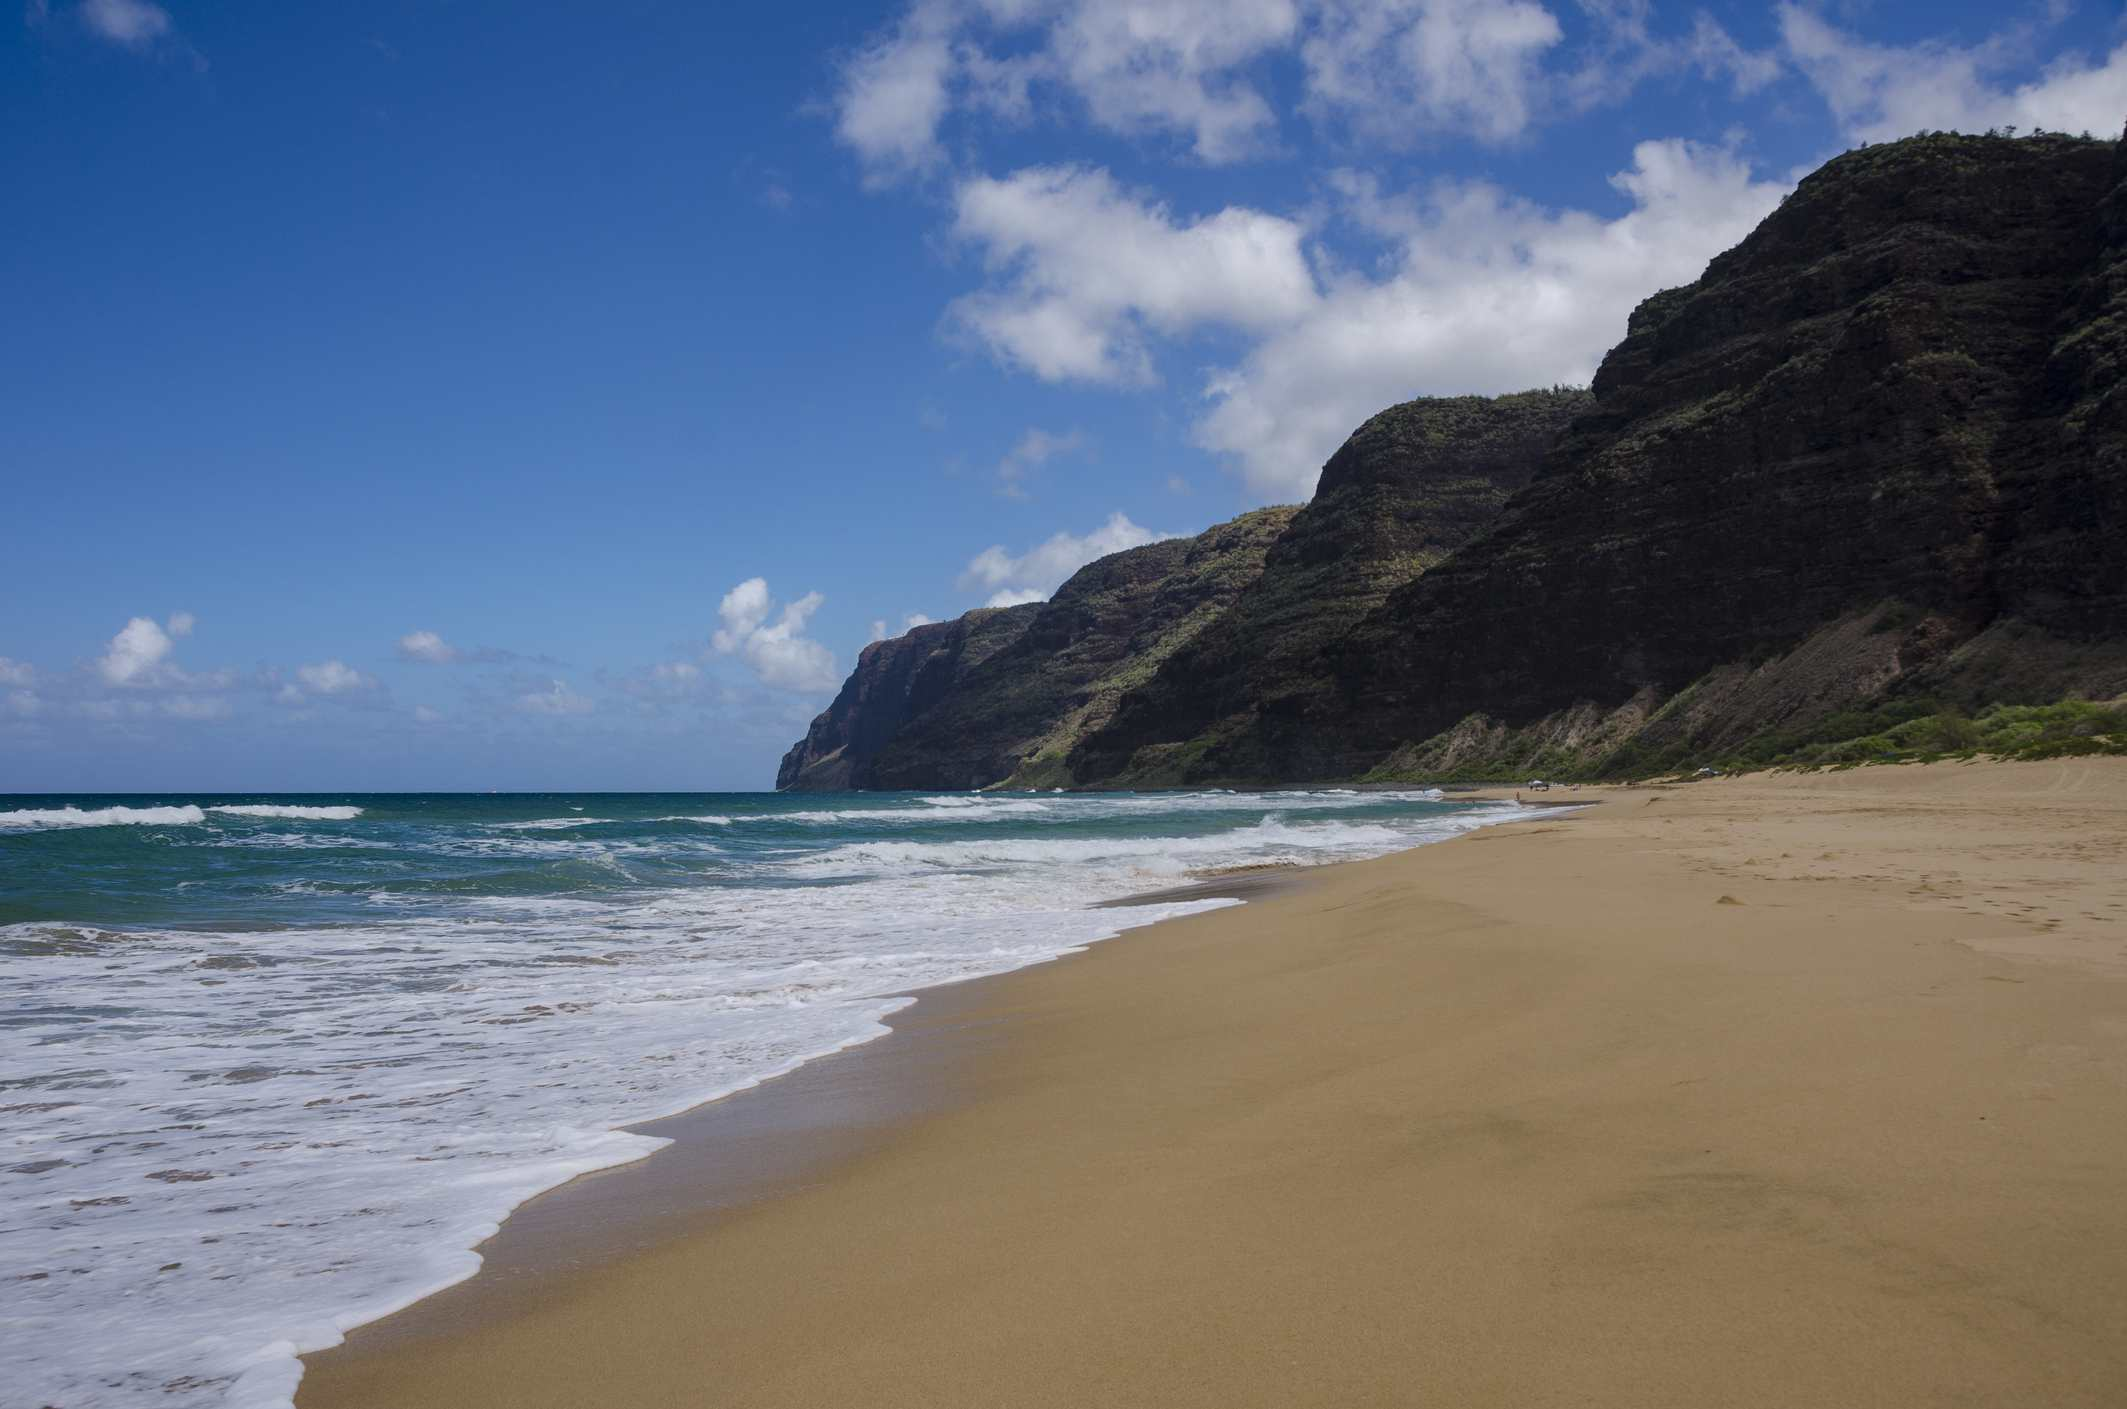 A view of the south end of the Napali Coast on the island of Kauai as seen from Polihale Beach.